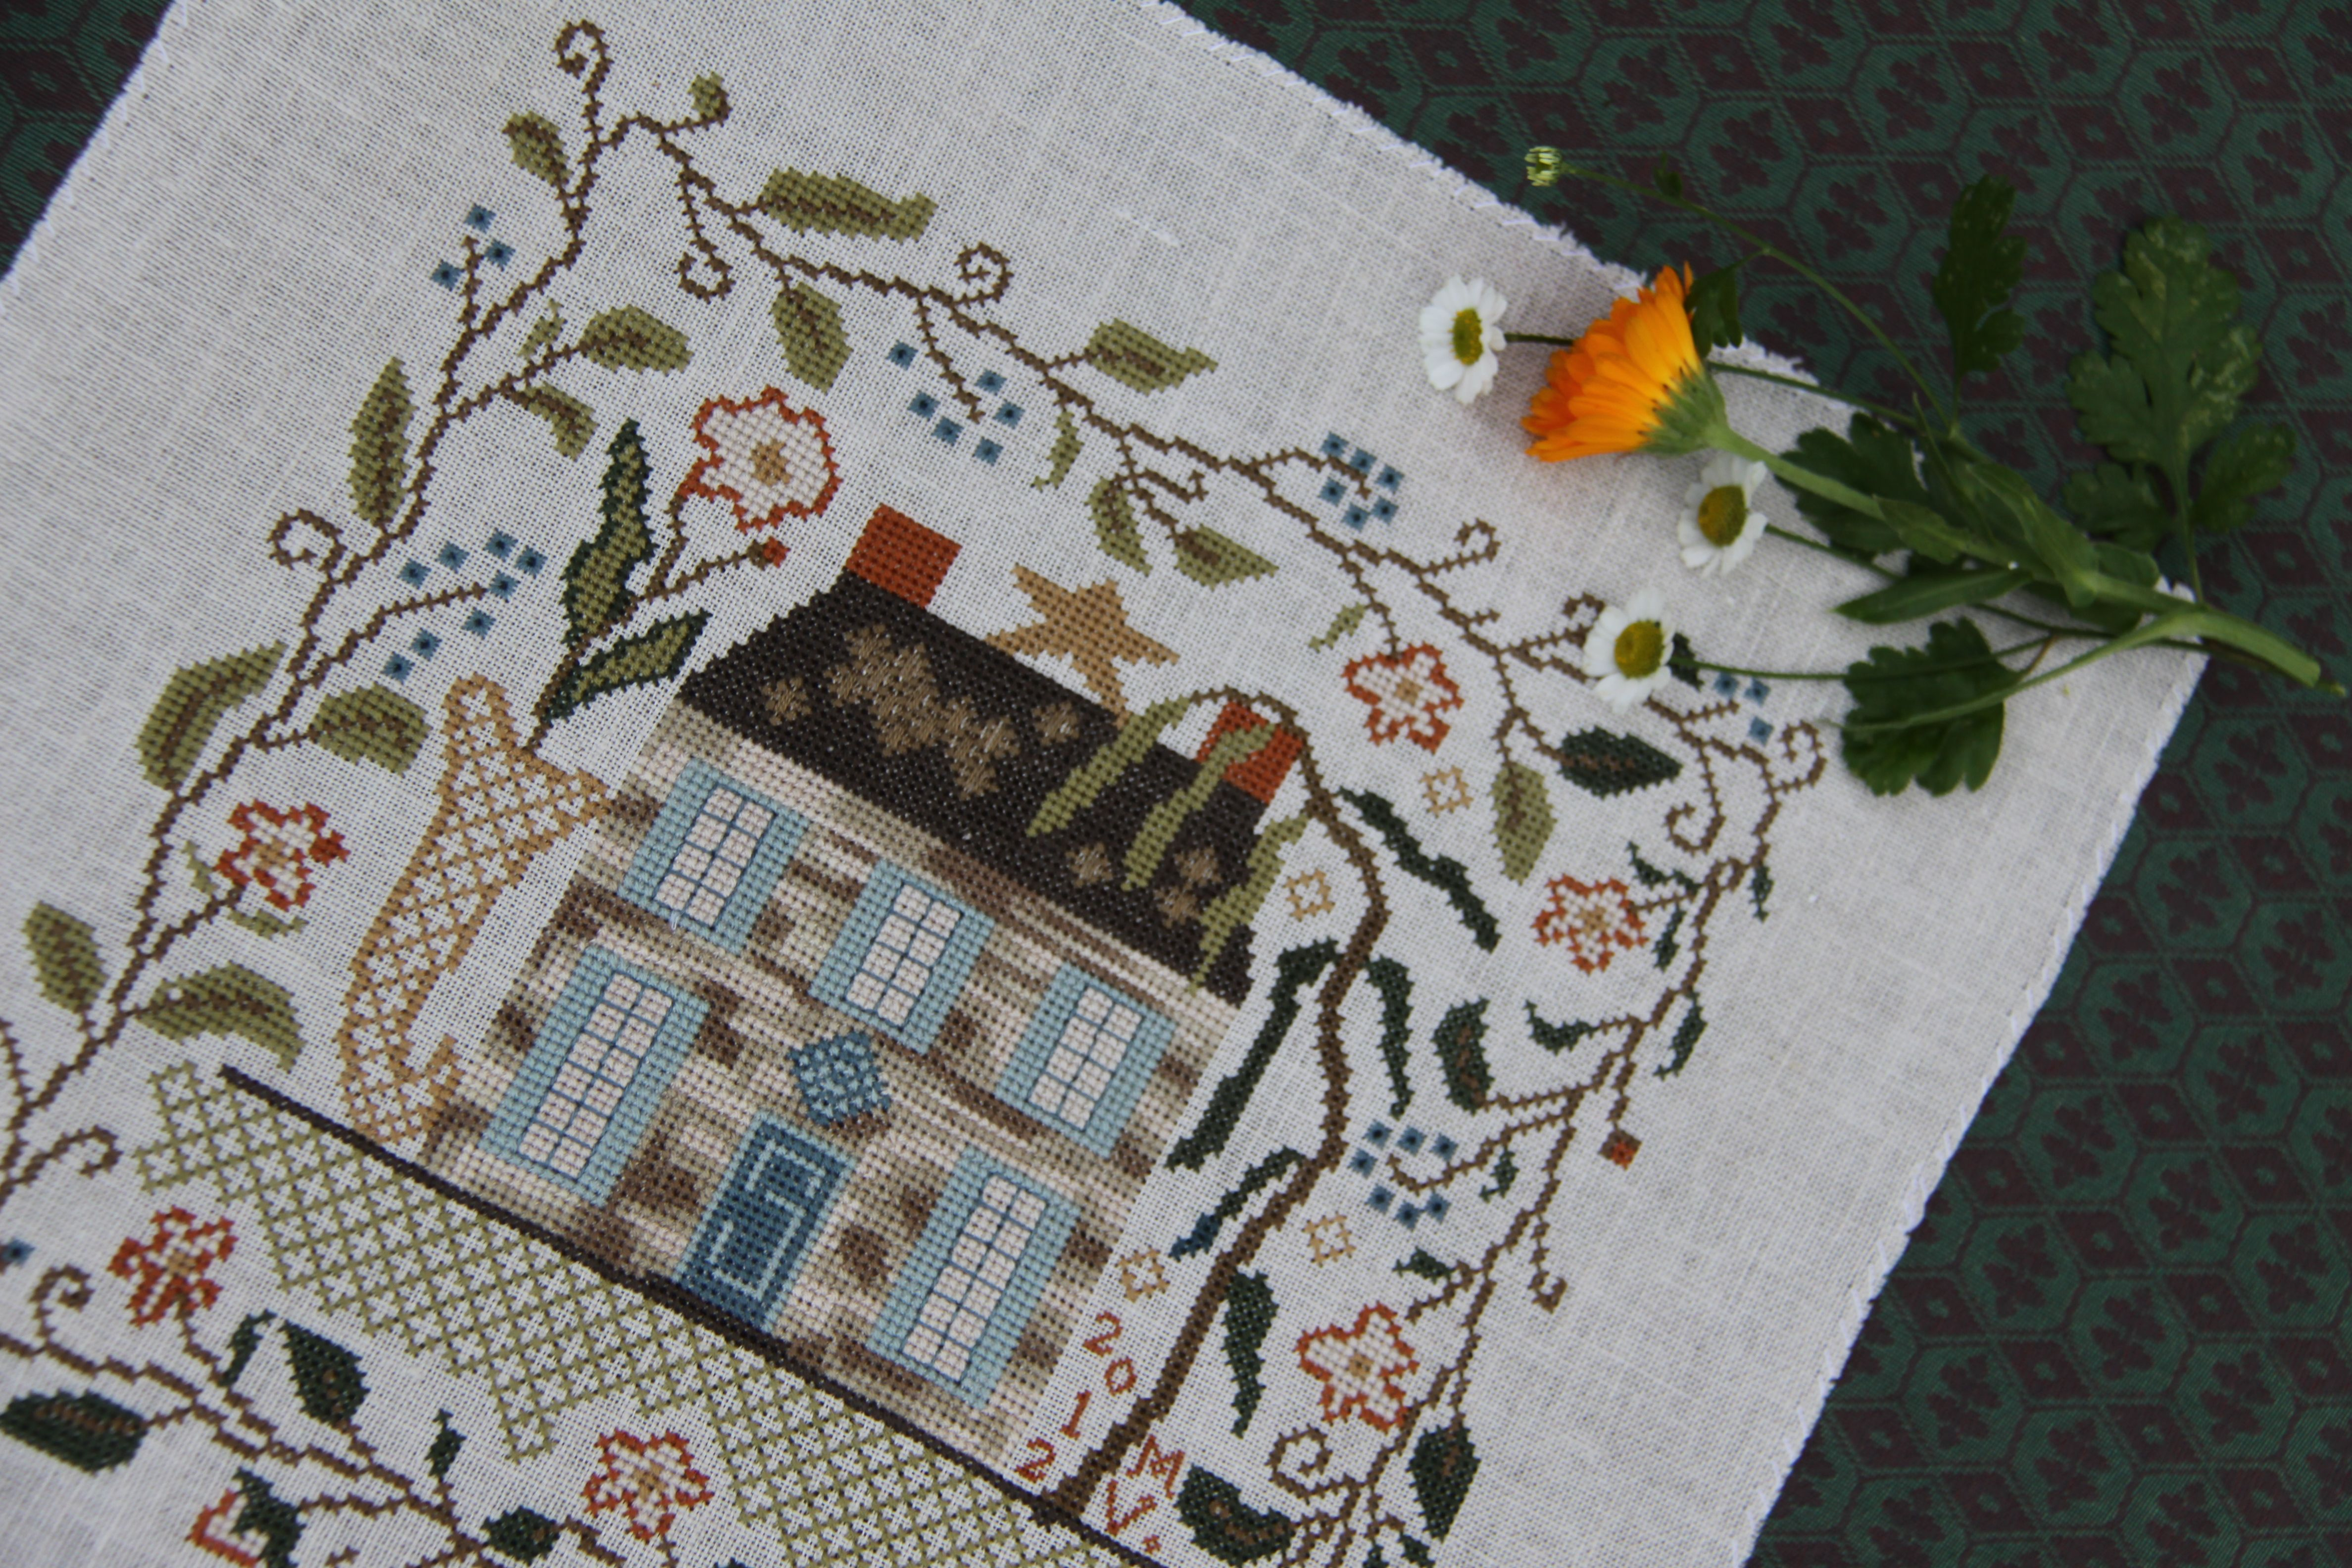 Pin by carol funicelli on cross stitch pinterest for Blackbird designs english garden